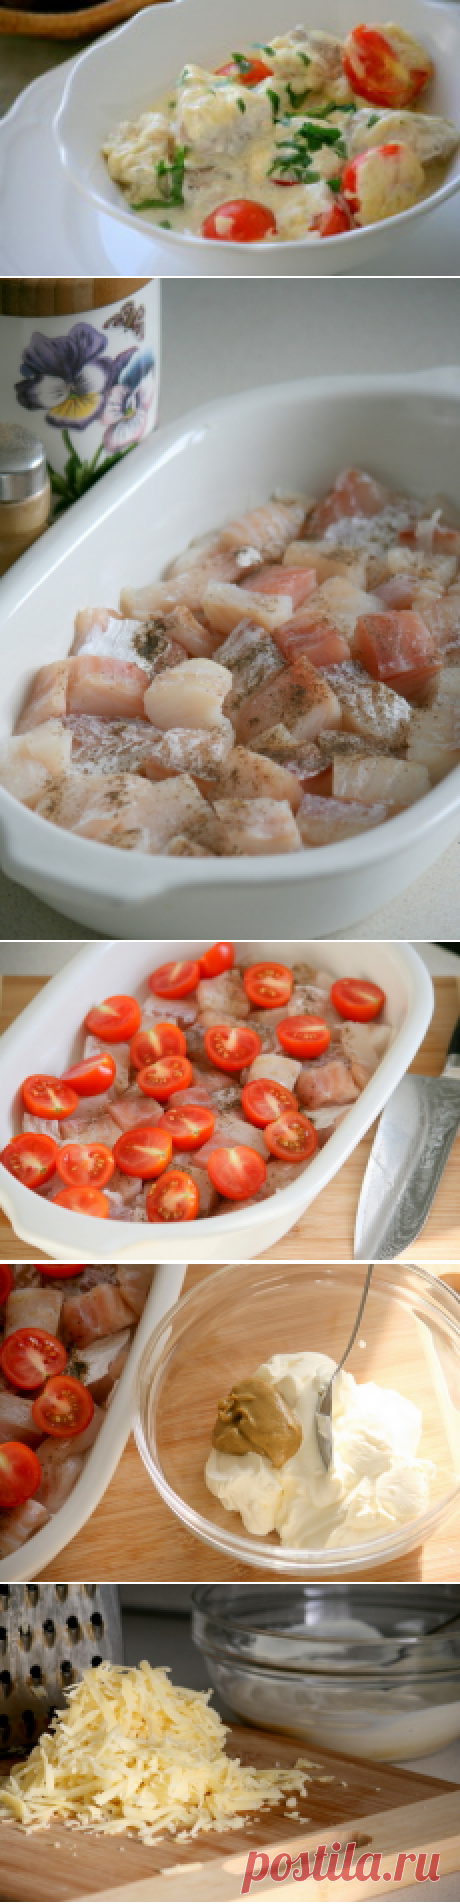 The cod baked in an oven with cheese and tomatoes - Home Restaurant